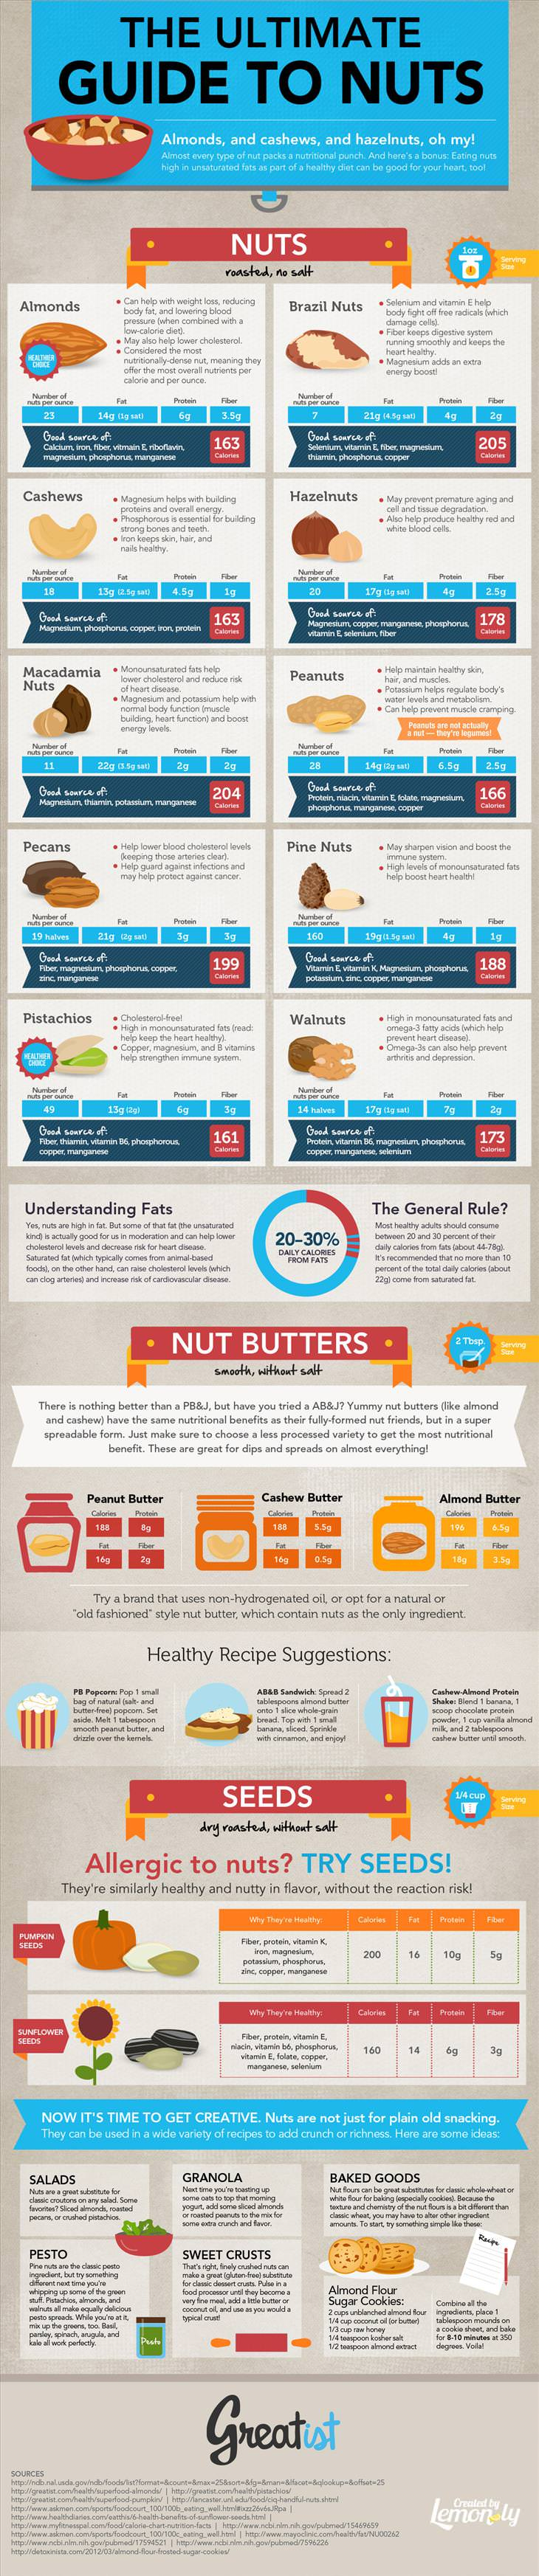 nuts guide, benefits, seeds